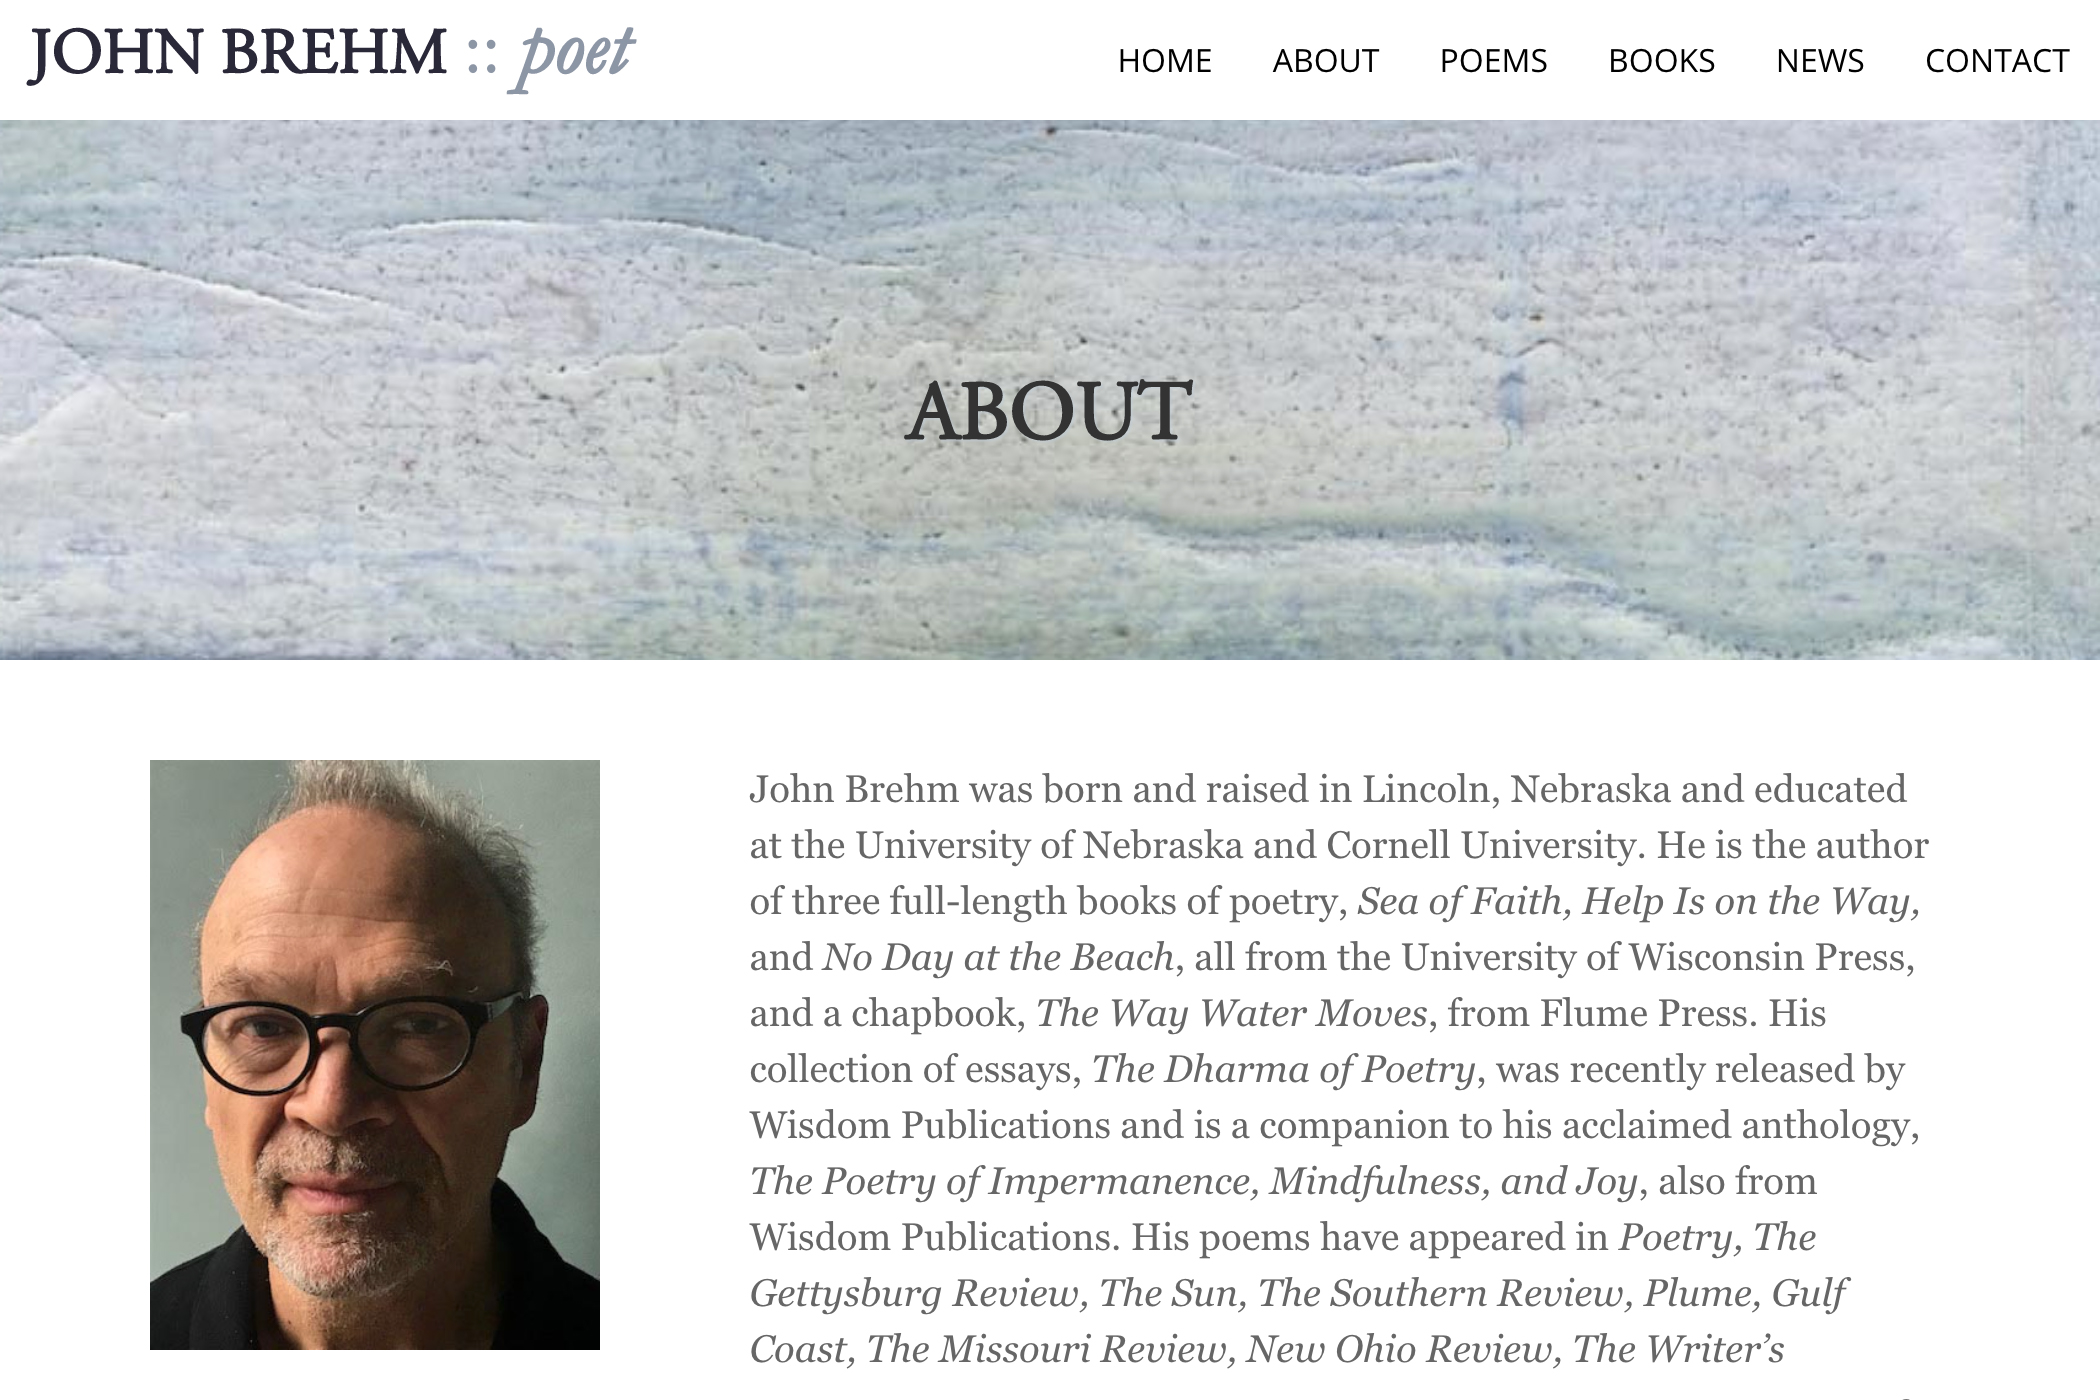 website design for a writer - about page for a poet